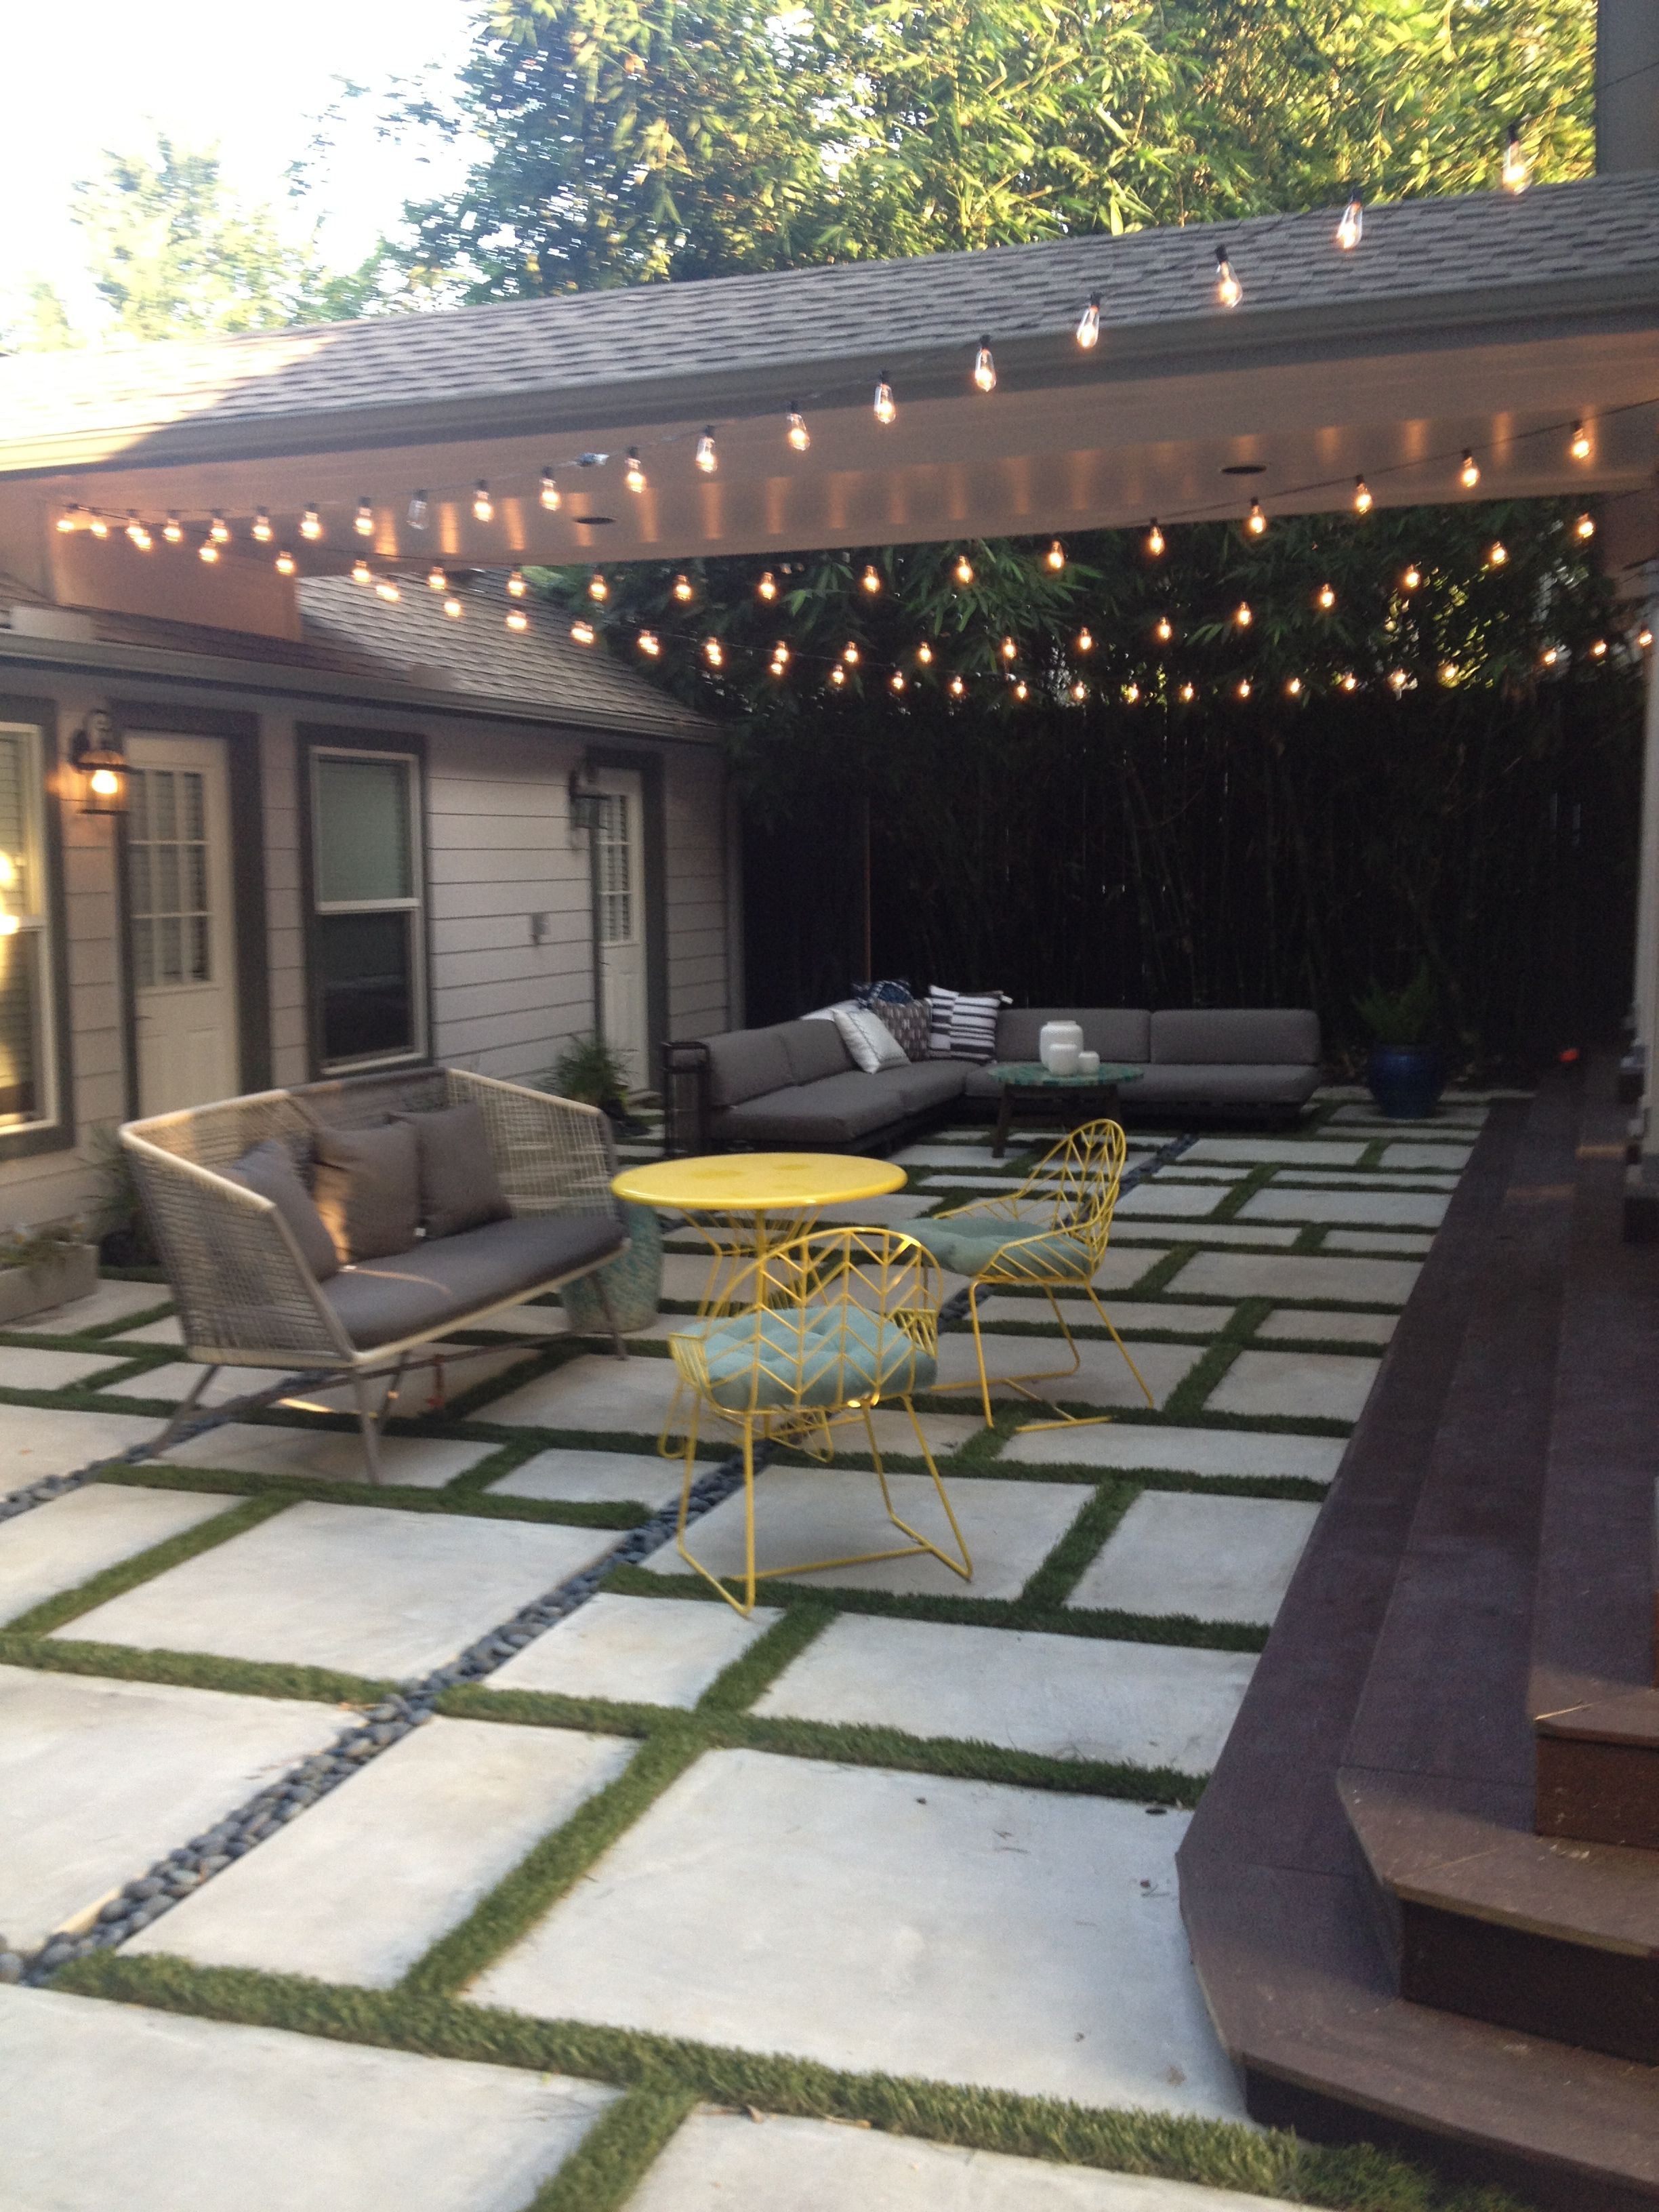 Square And Rectangle Concrete Forms With Turf Grass In